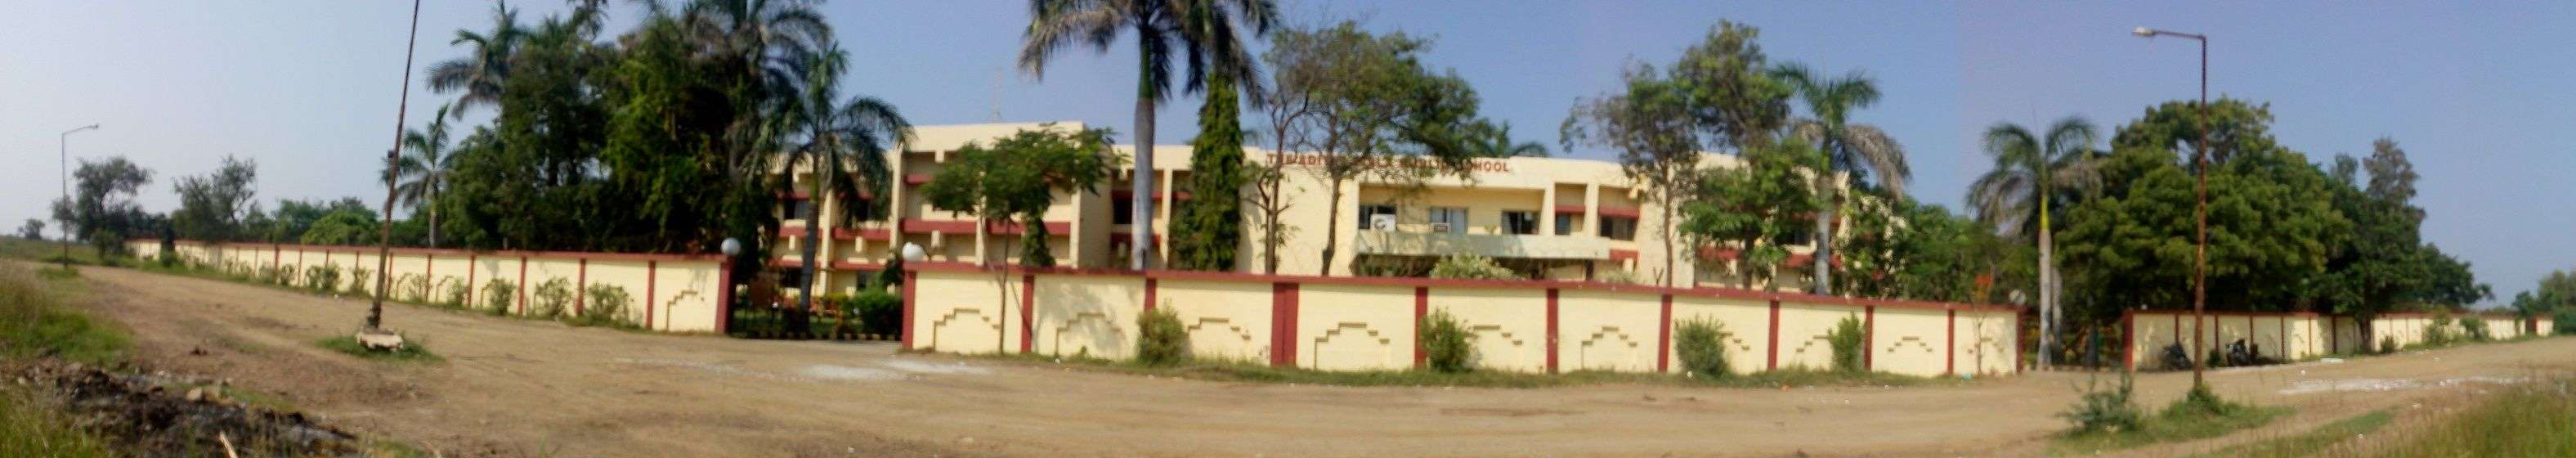 THE ADITYA BIRLA PUBLIC SCHOOL DAHEJ DISTT BHARUCH GUJARAT 430040